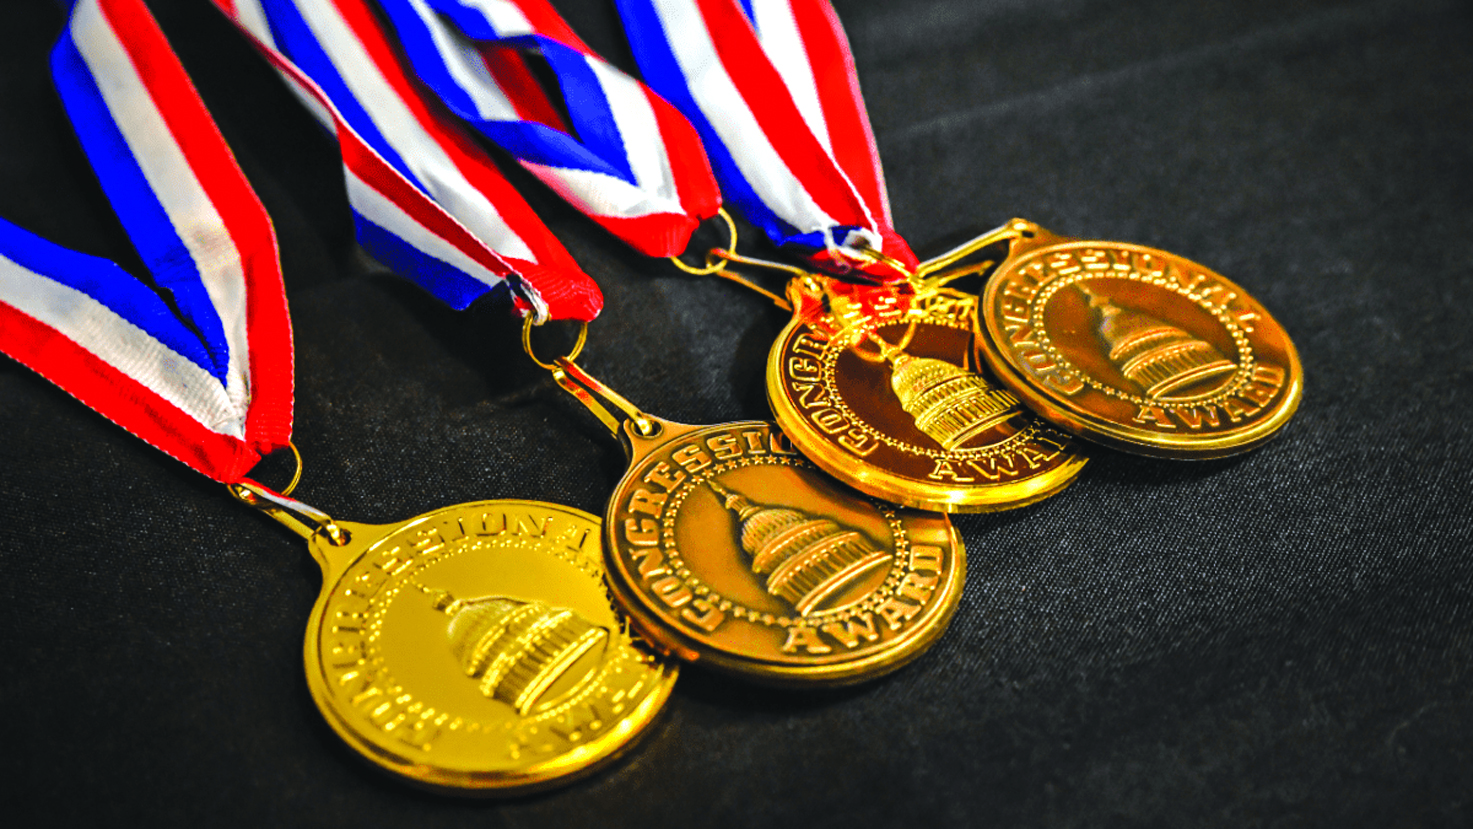 Local Students Earn Congressional Award Gold Medal